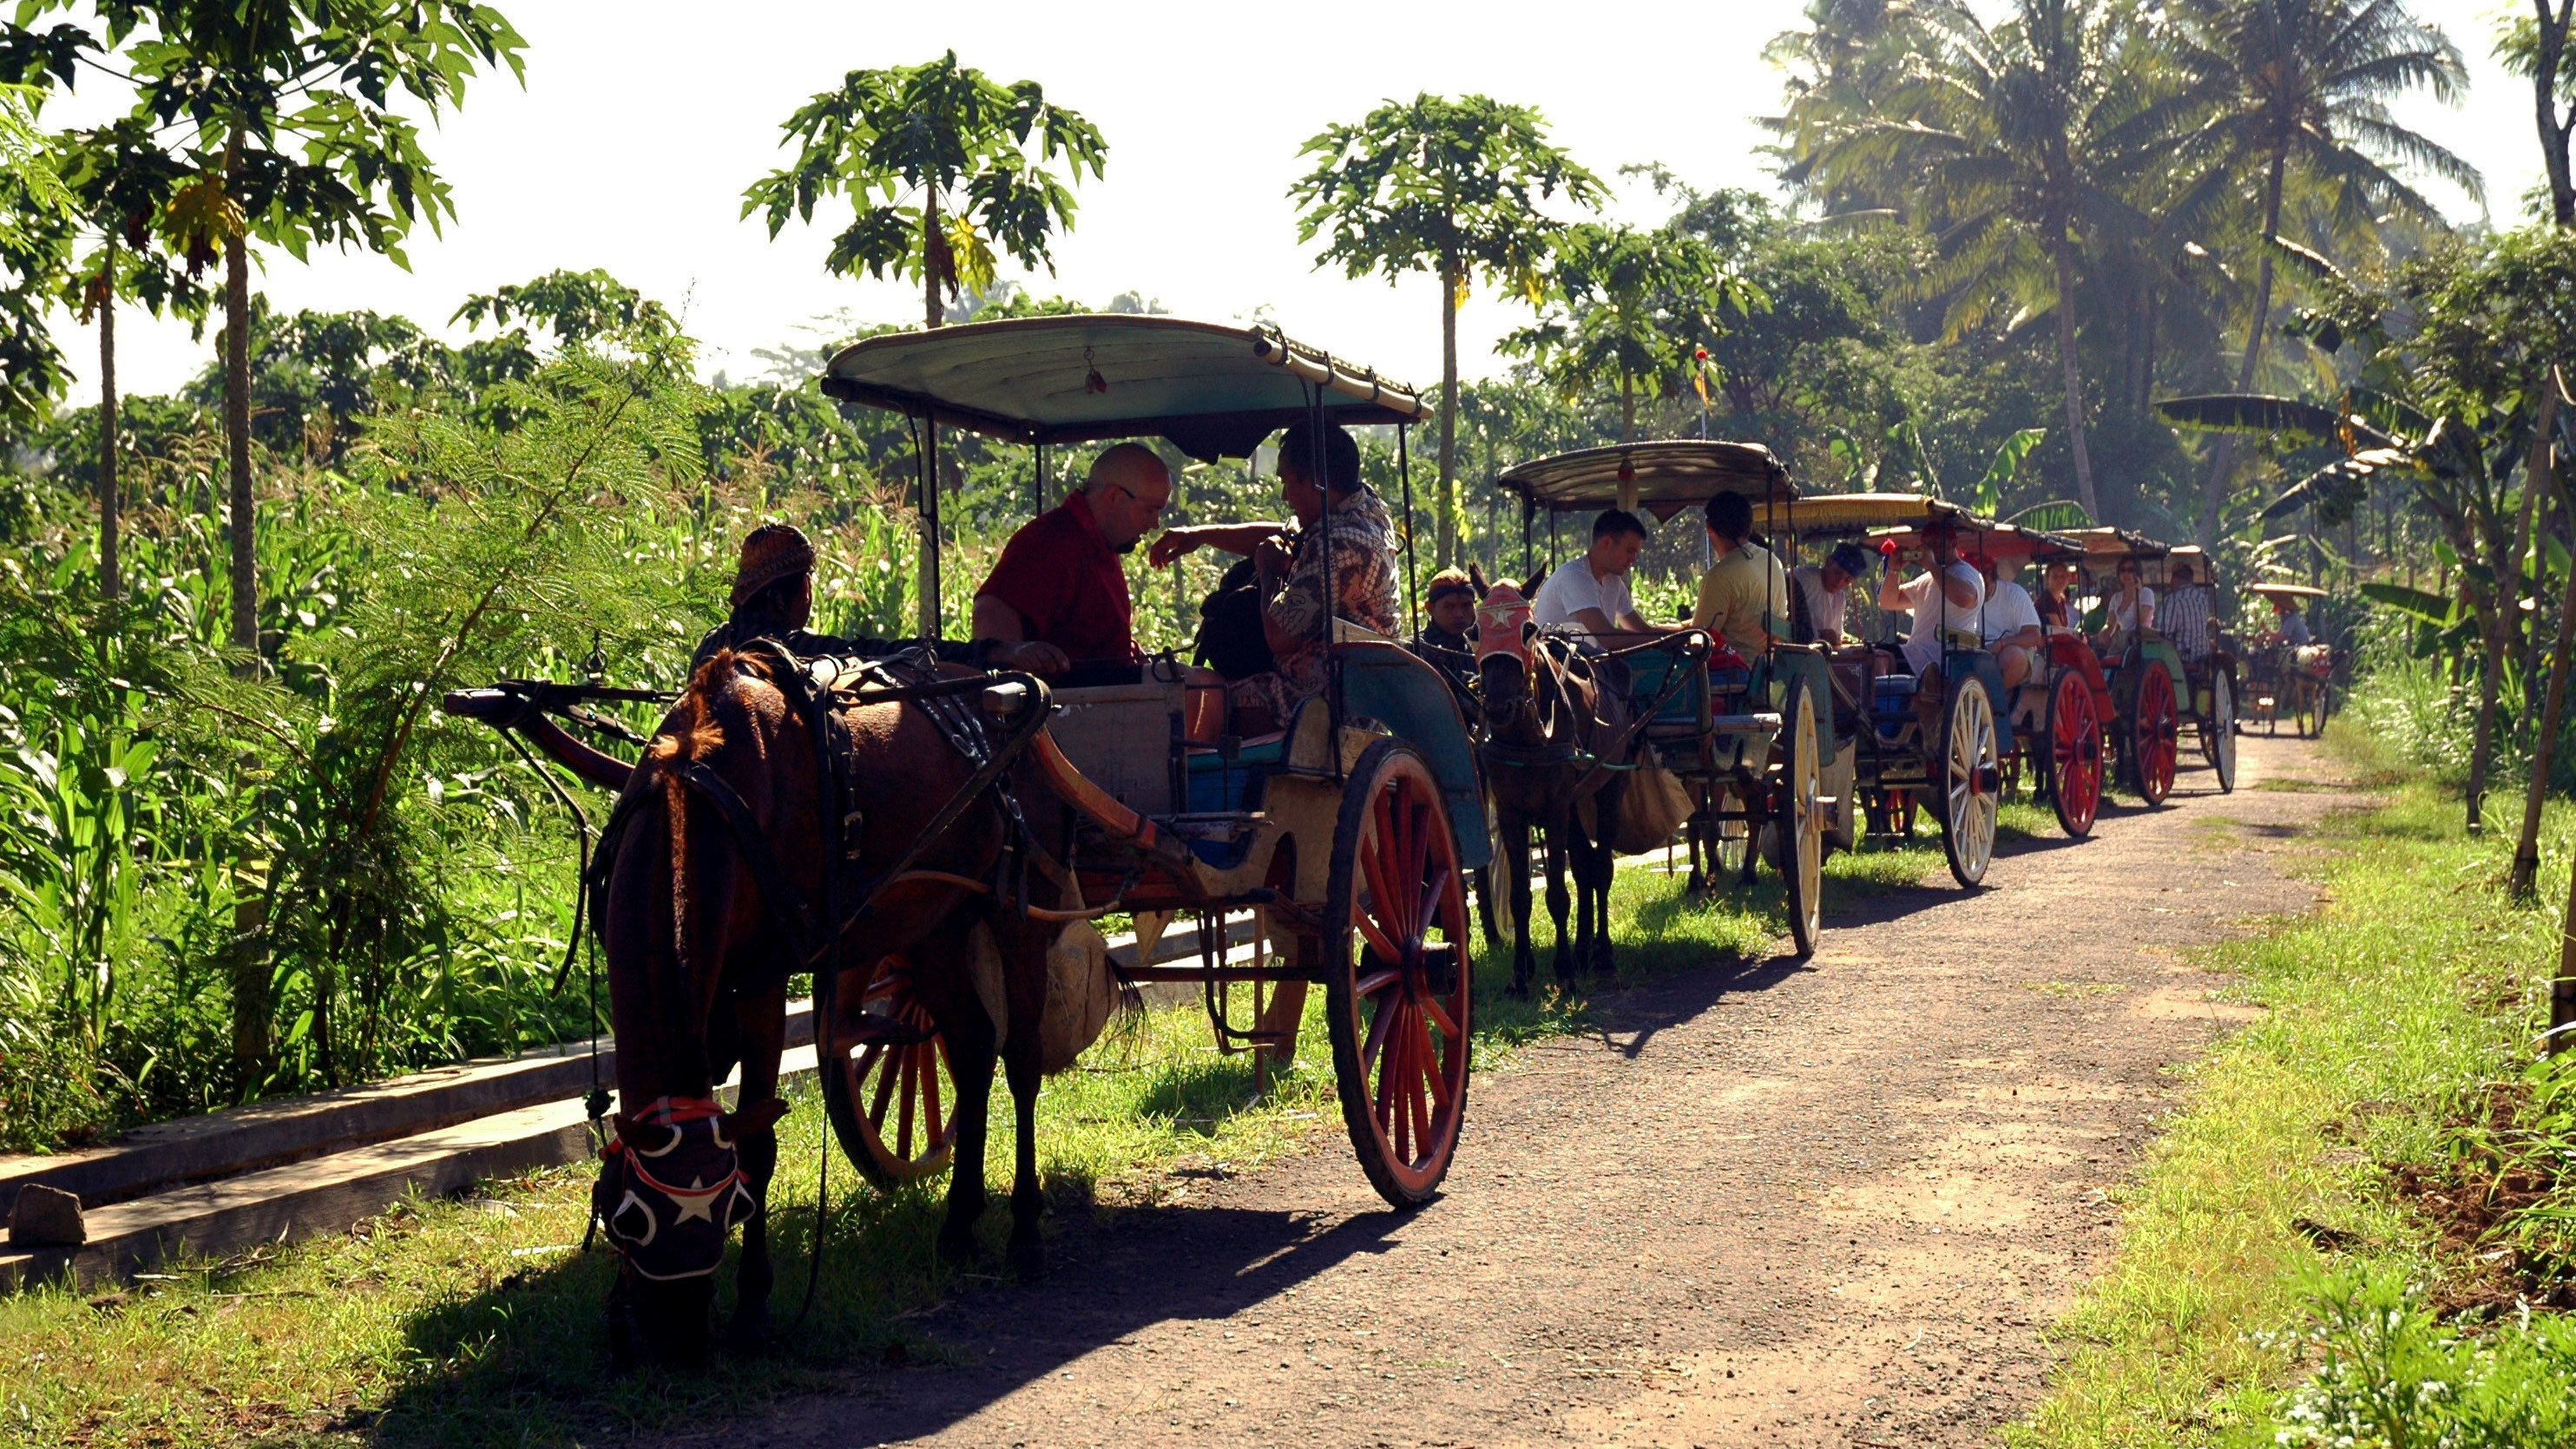 Line of horse-pulled carriages on a tree-lined path in Candirejo Village